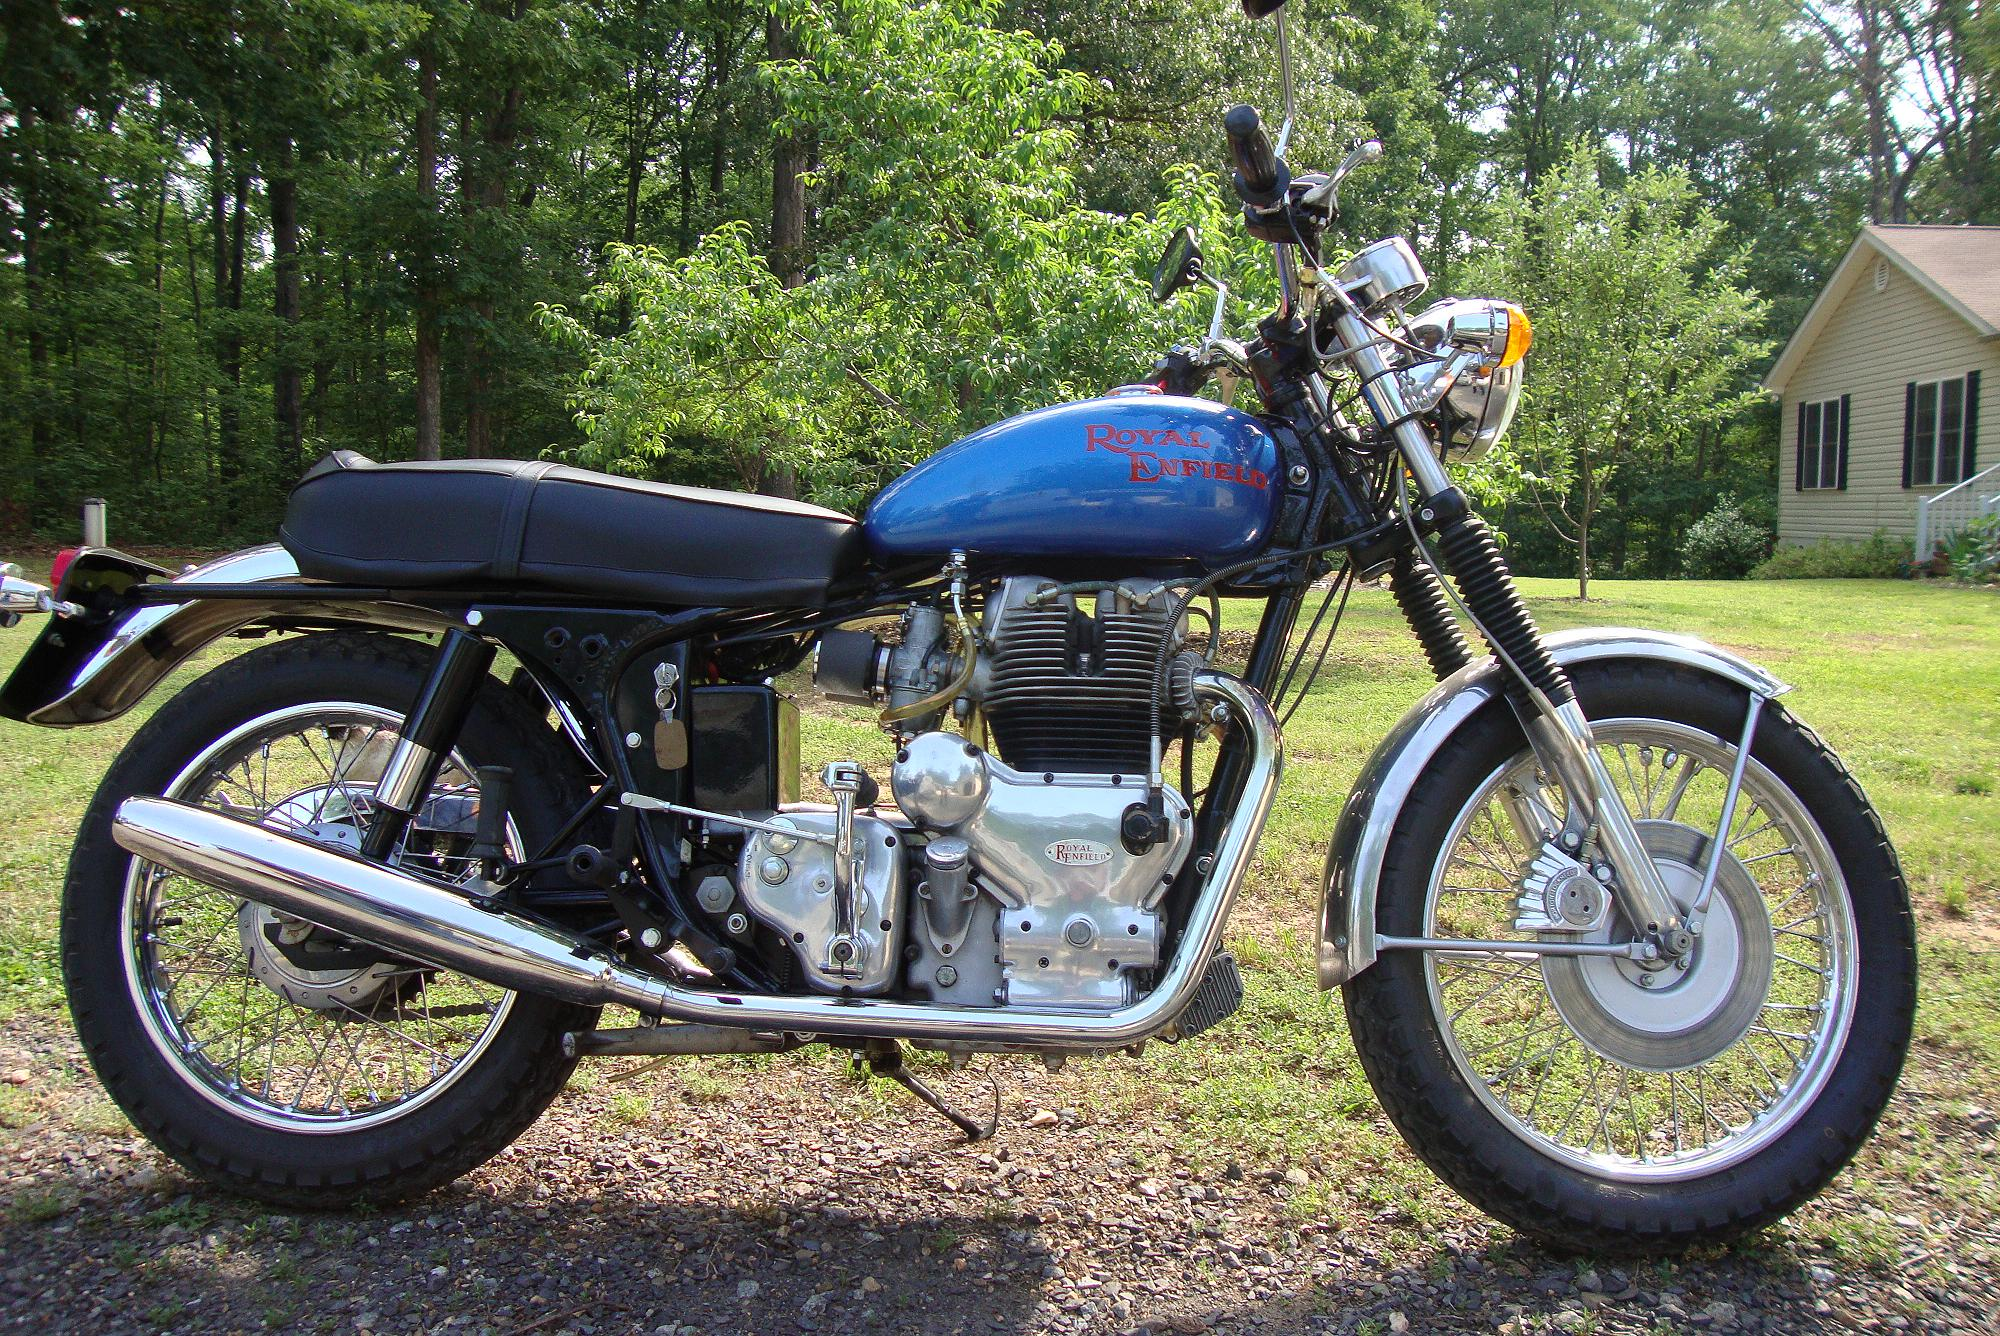 randy 39 s cycle service restoration 1968 royal enfield. Black Bedroom Furniture Sets. Home Design Ideas